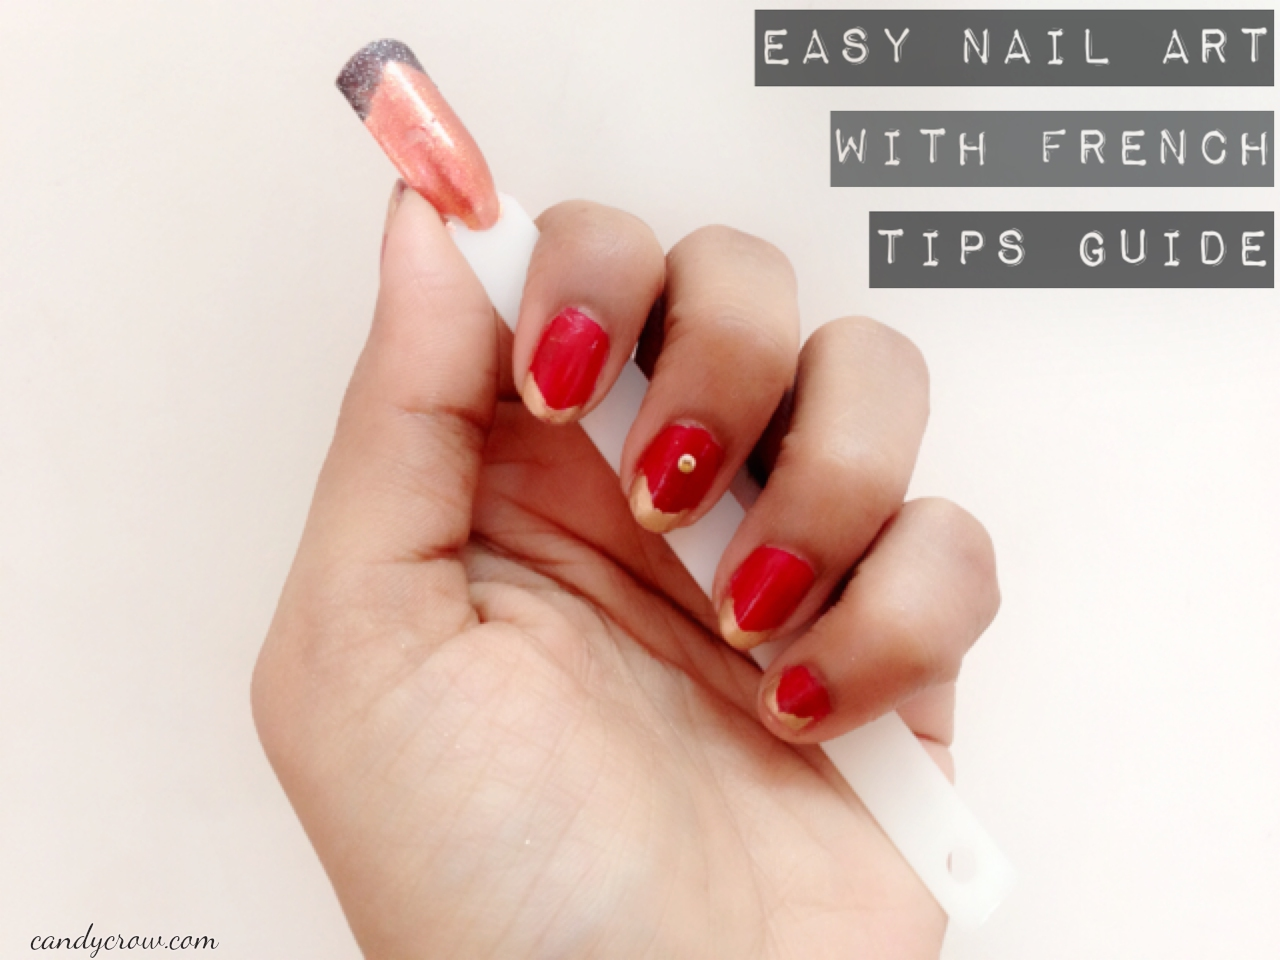 Nail Art using French Tip Guides   Candy Crow- Top Indian Beauty and ...